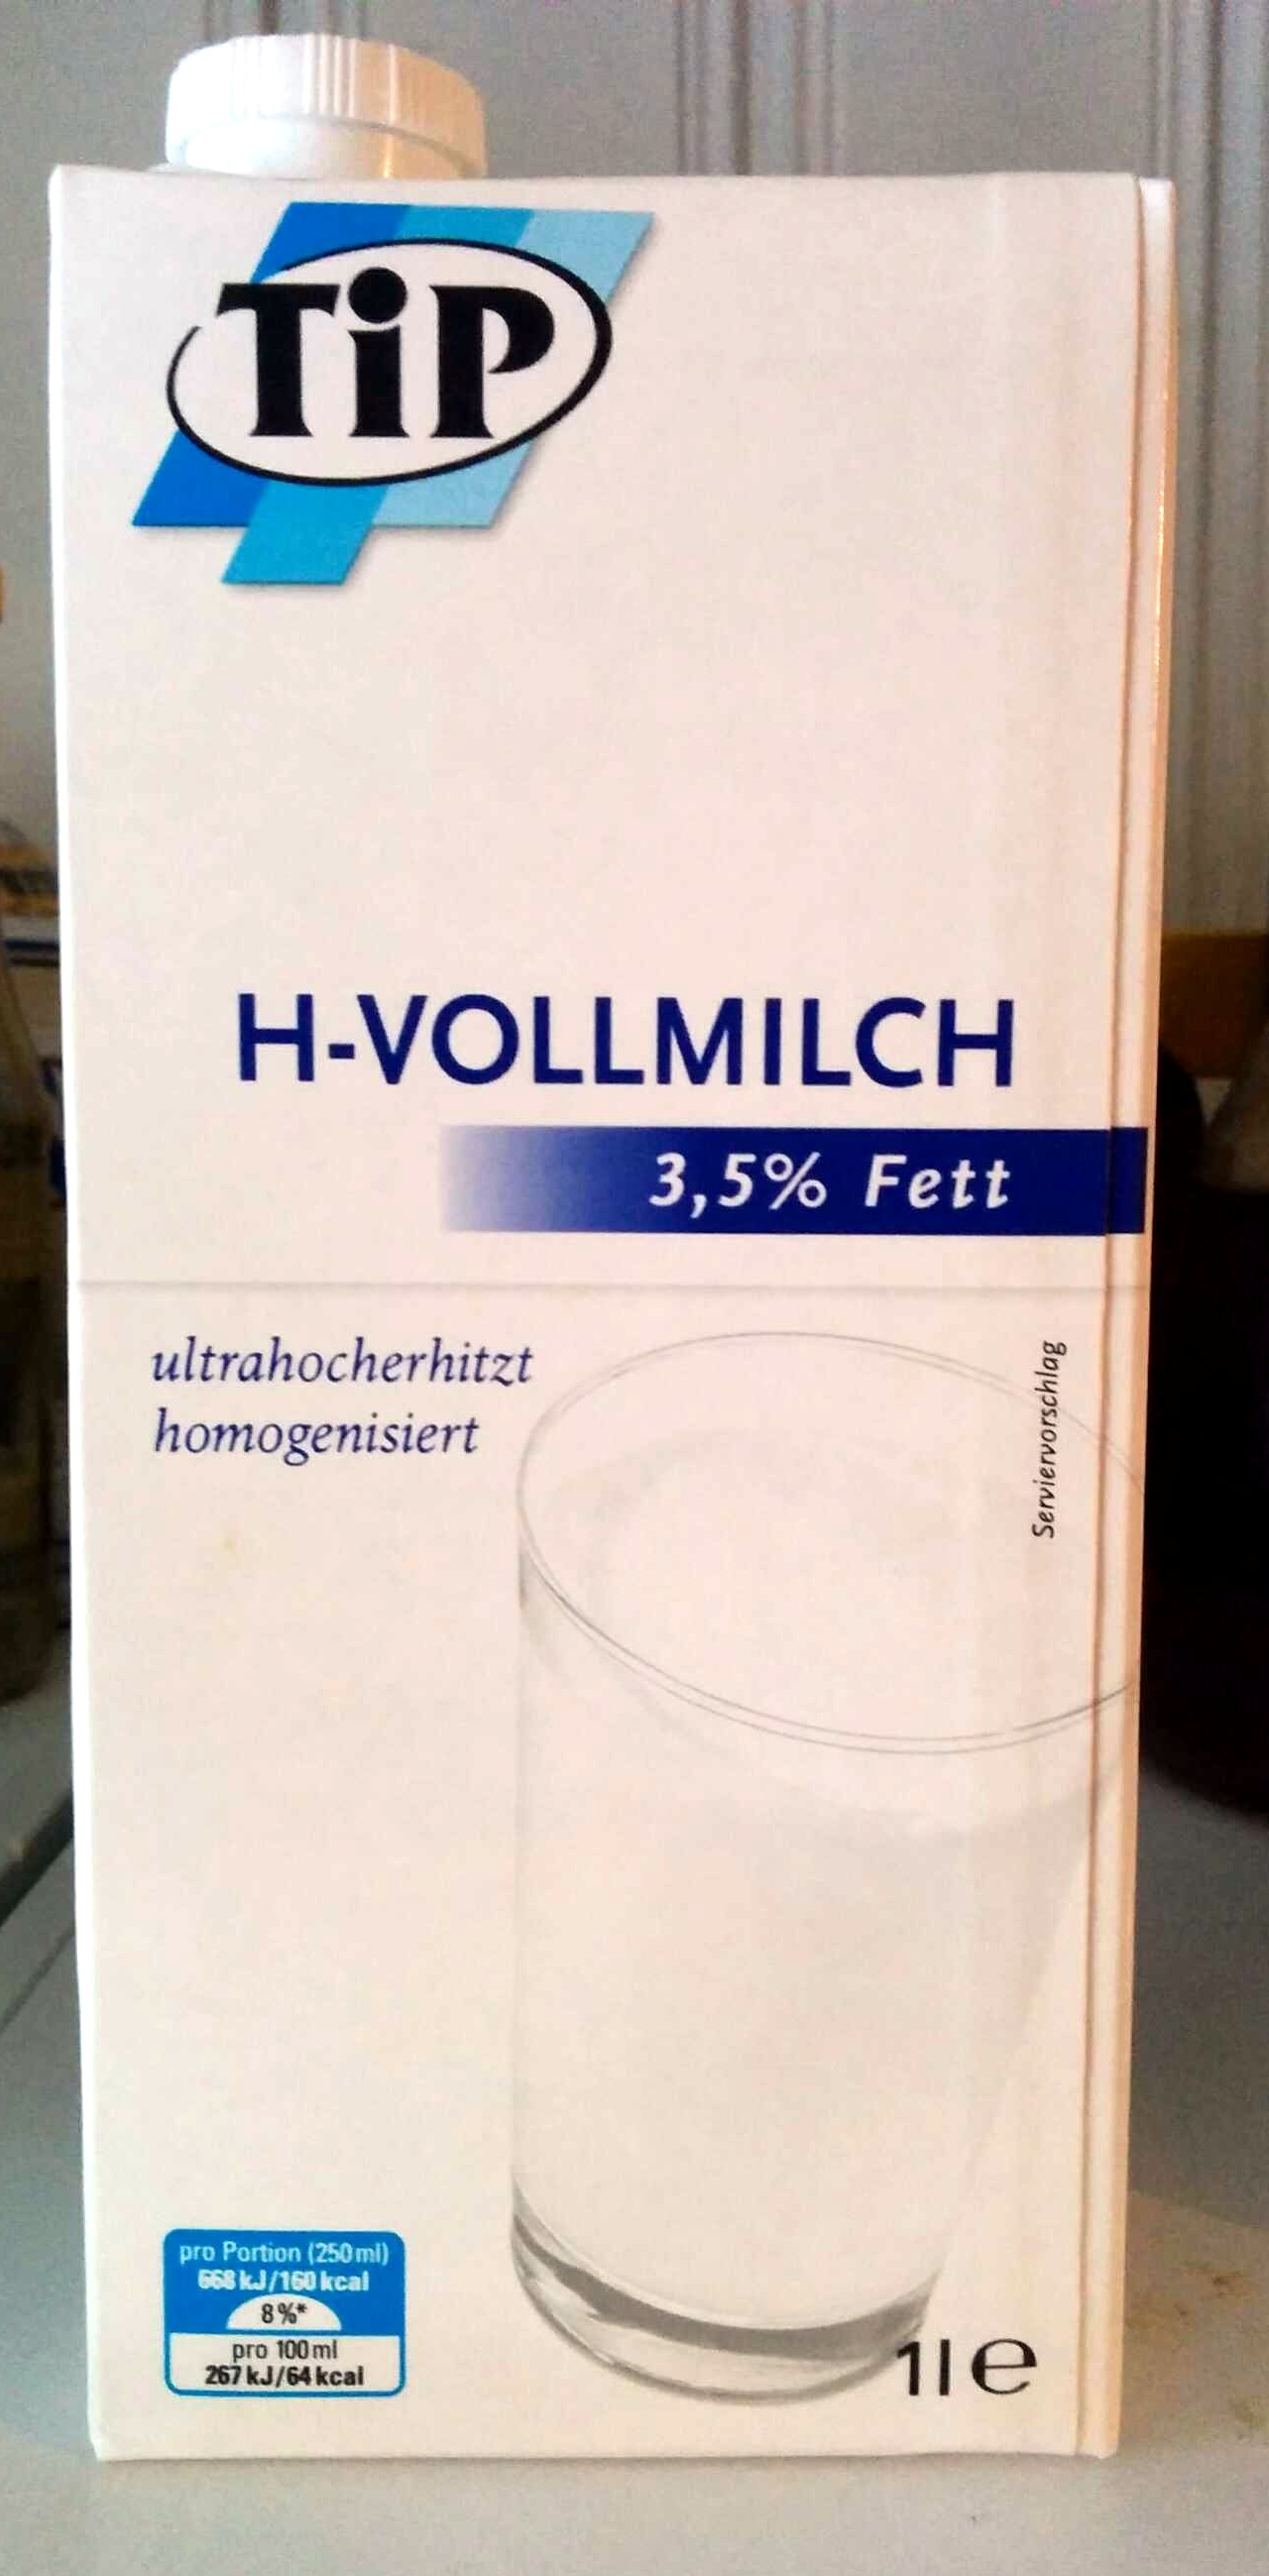 H-Vollmilch - Product